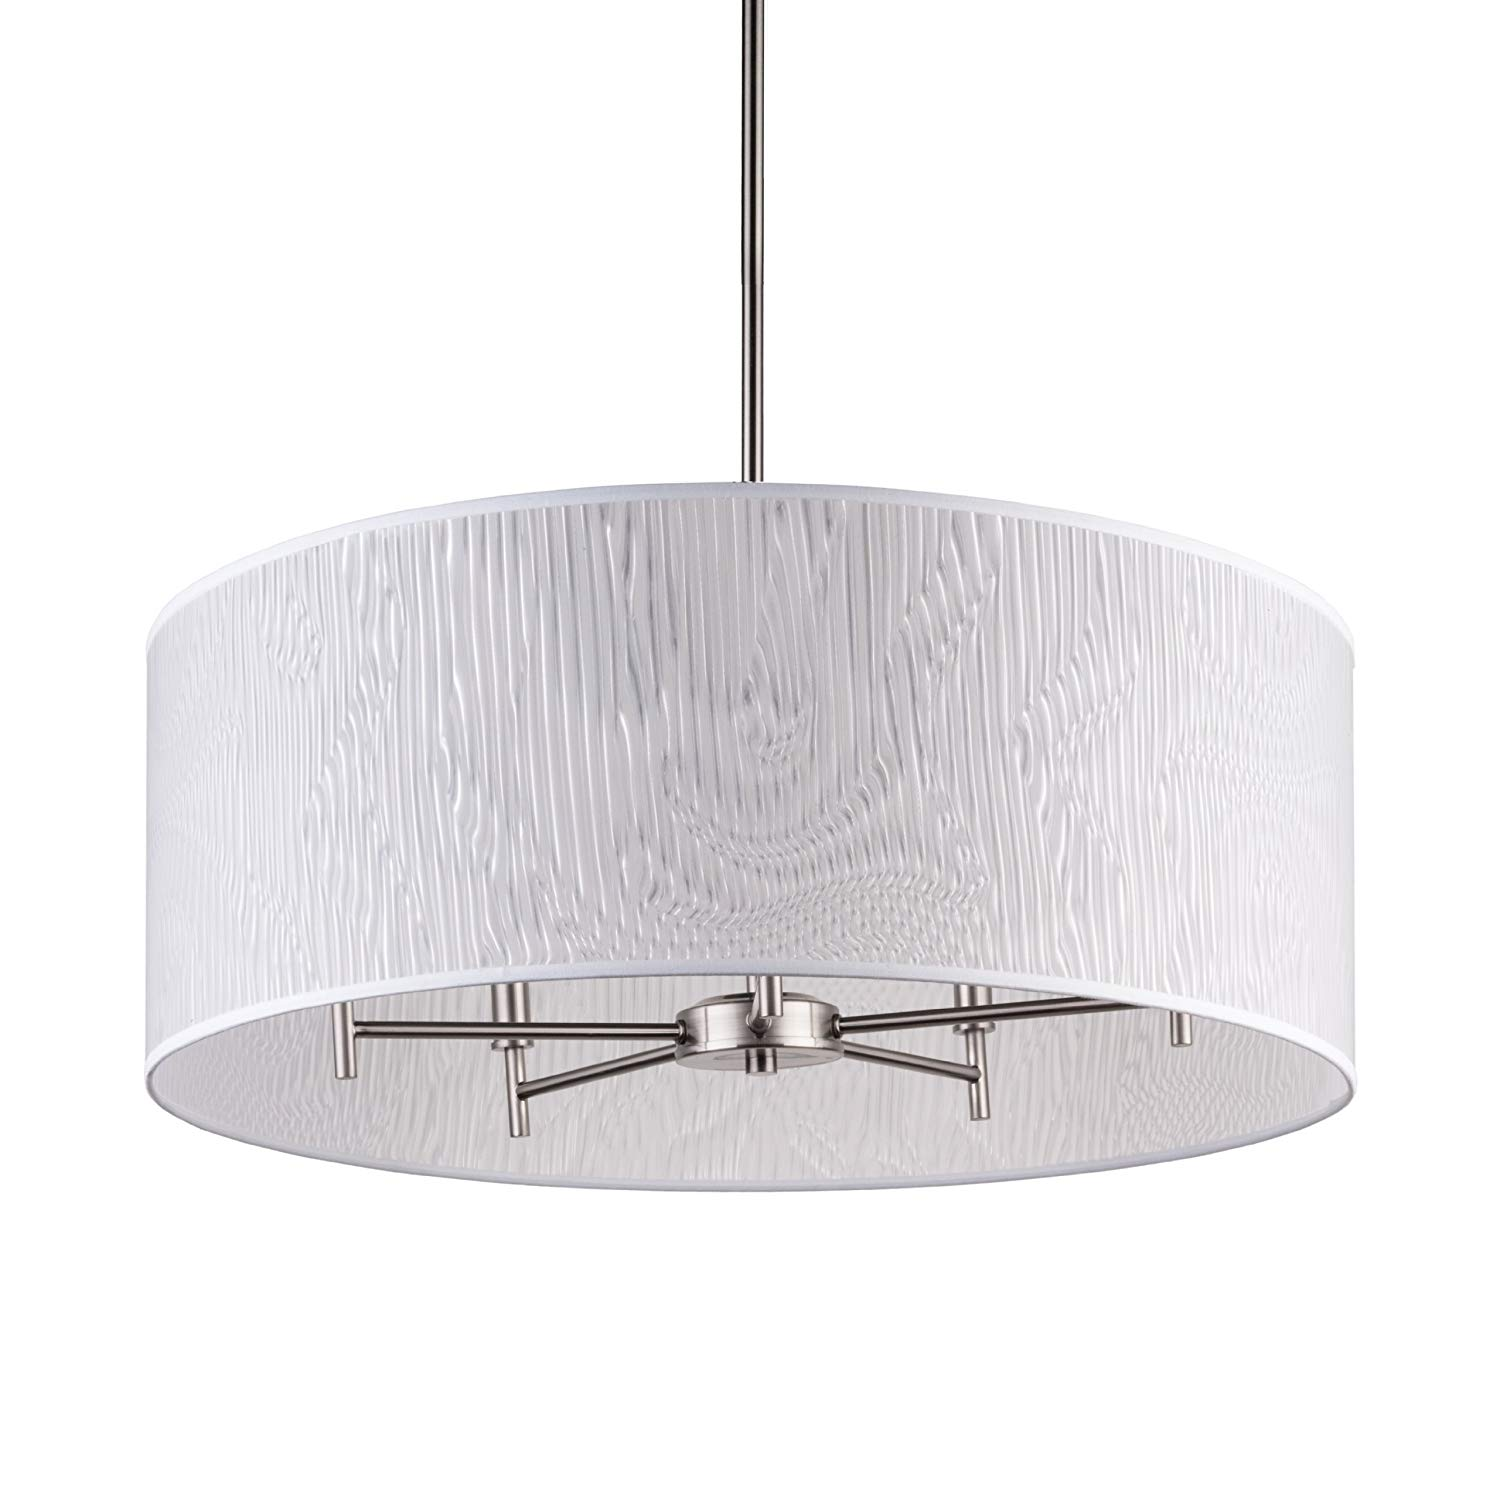 "Lights Up! TS-9050BN-OPT Walker 5-Arm Drum Chandelier, 24"" x 24"" x 36"", Brushed Nickel Finish"